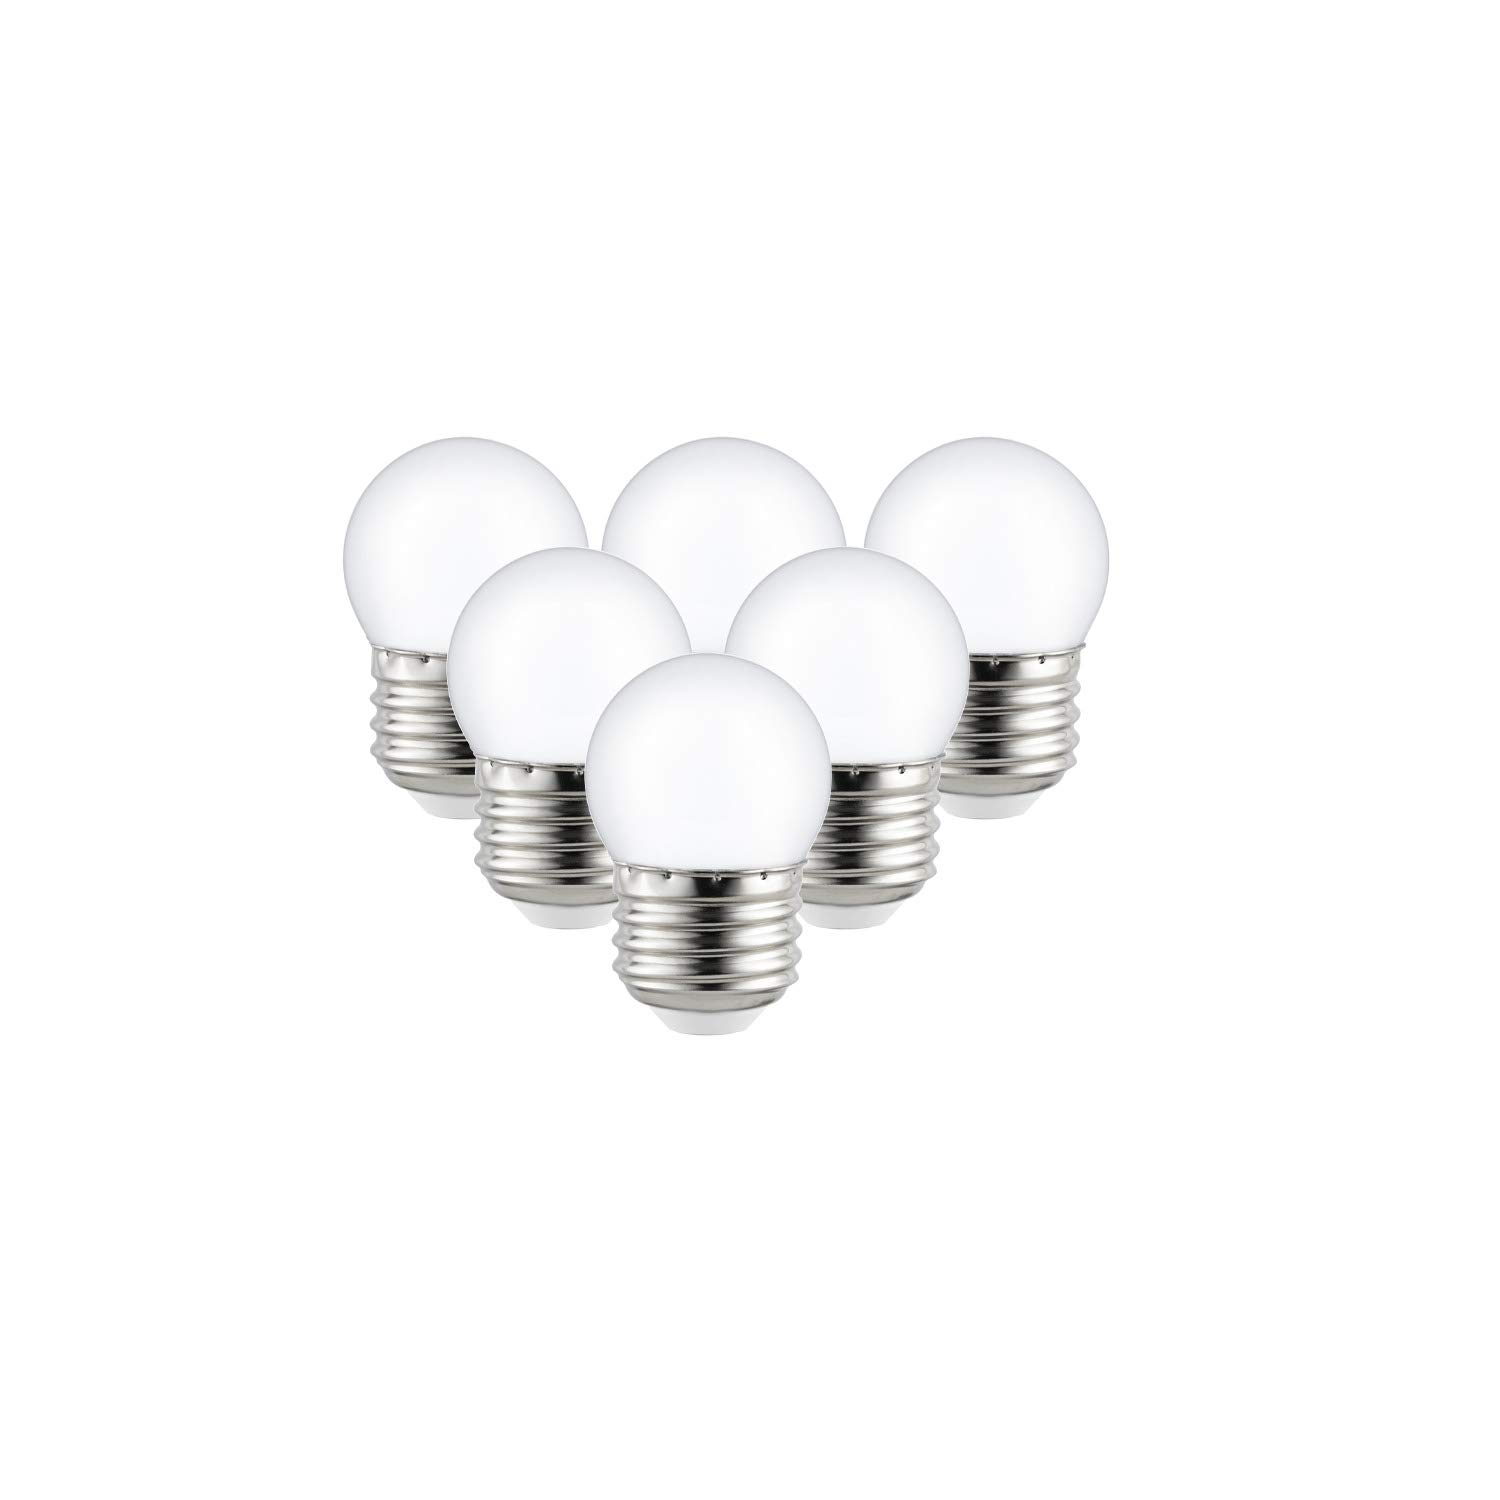 Sunlite 41067-SU LED S11 Refrigerator and Freezer Appliance Light Bulb, Warm White 6 Pack Frosted